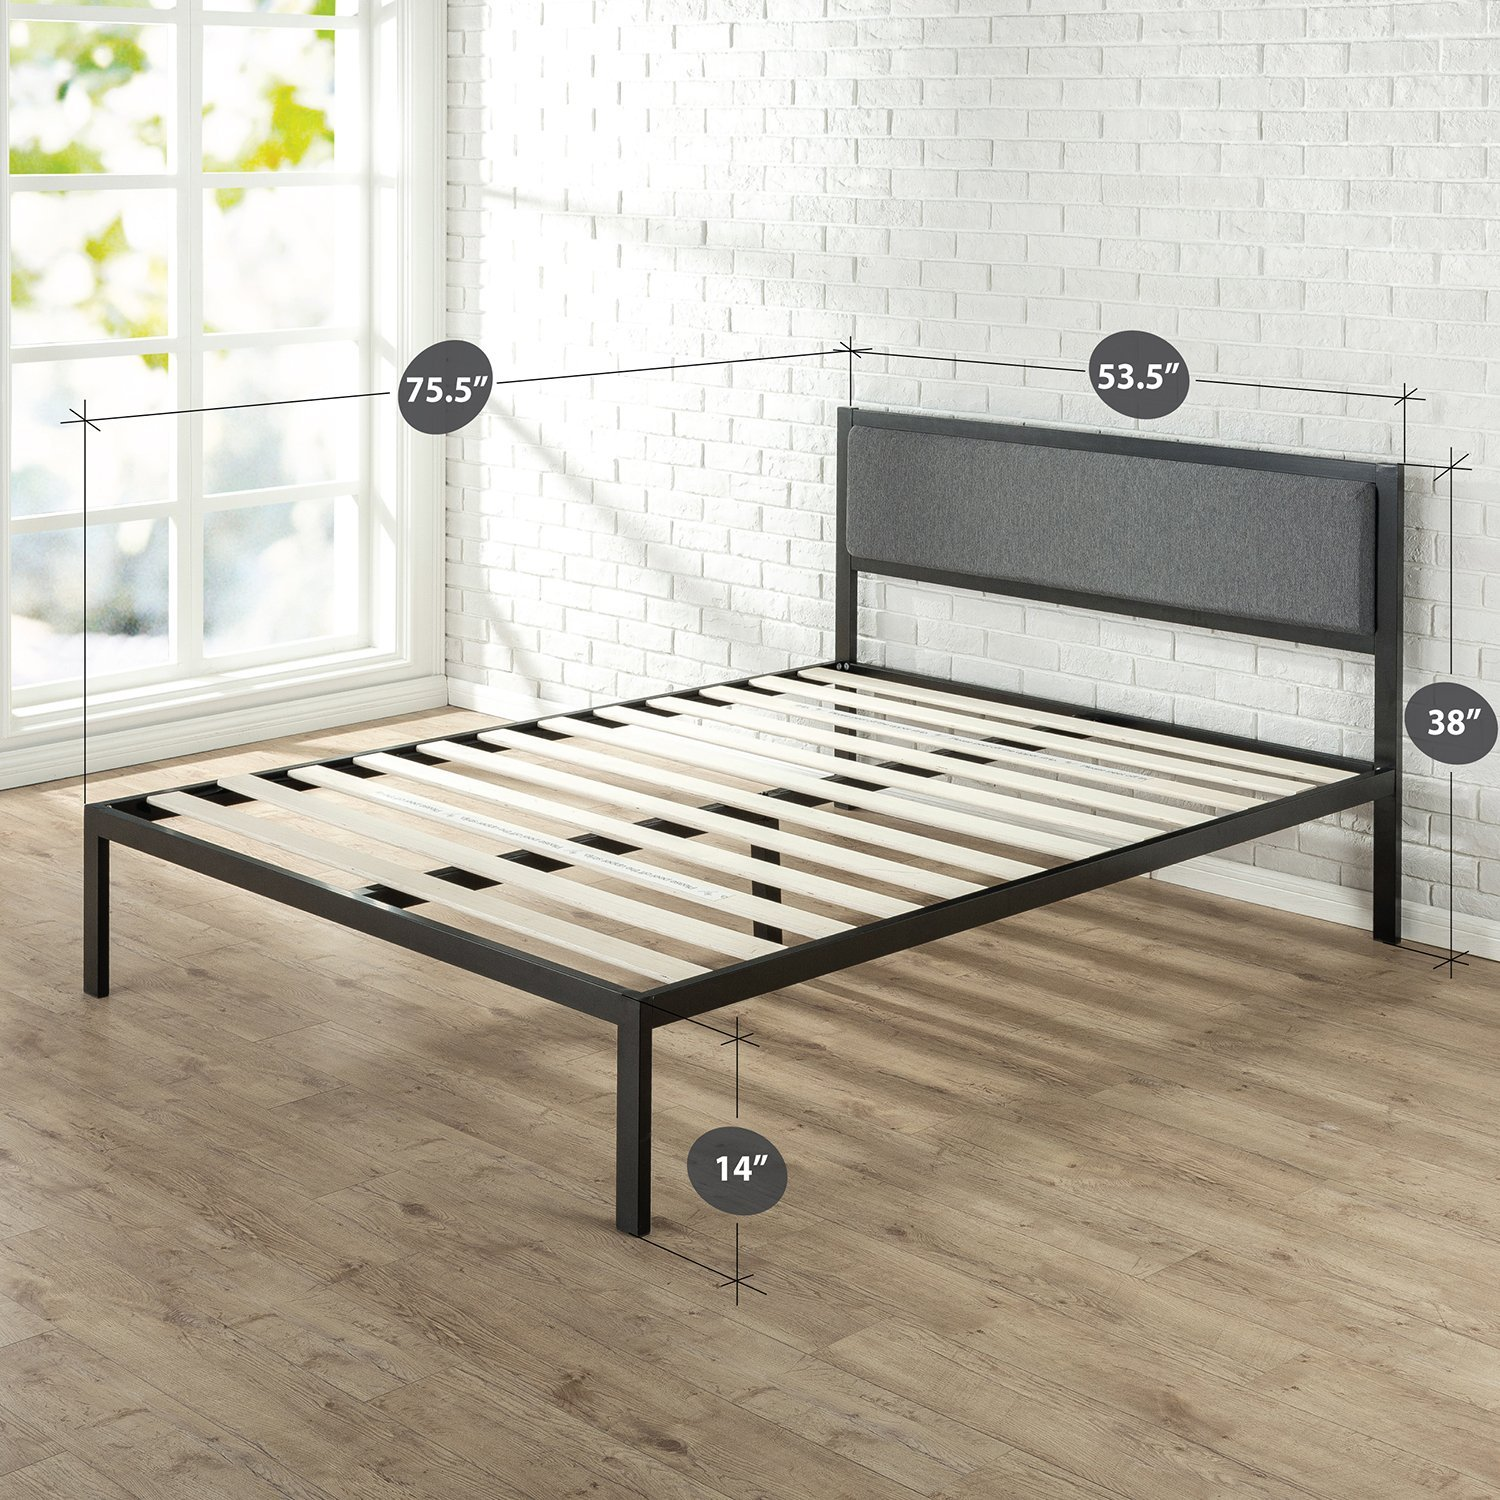 Diamension Zinus 14 Inch Platform Metal Bed Frame